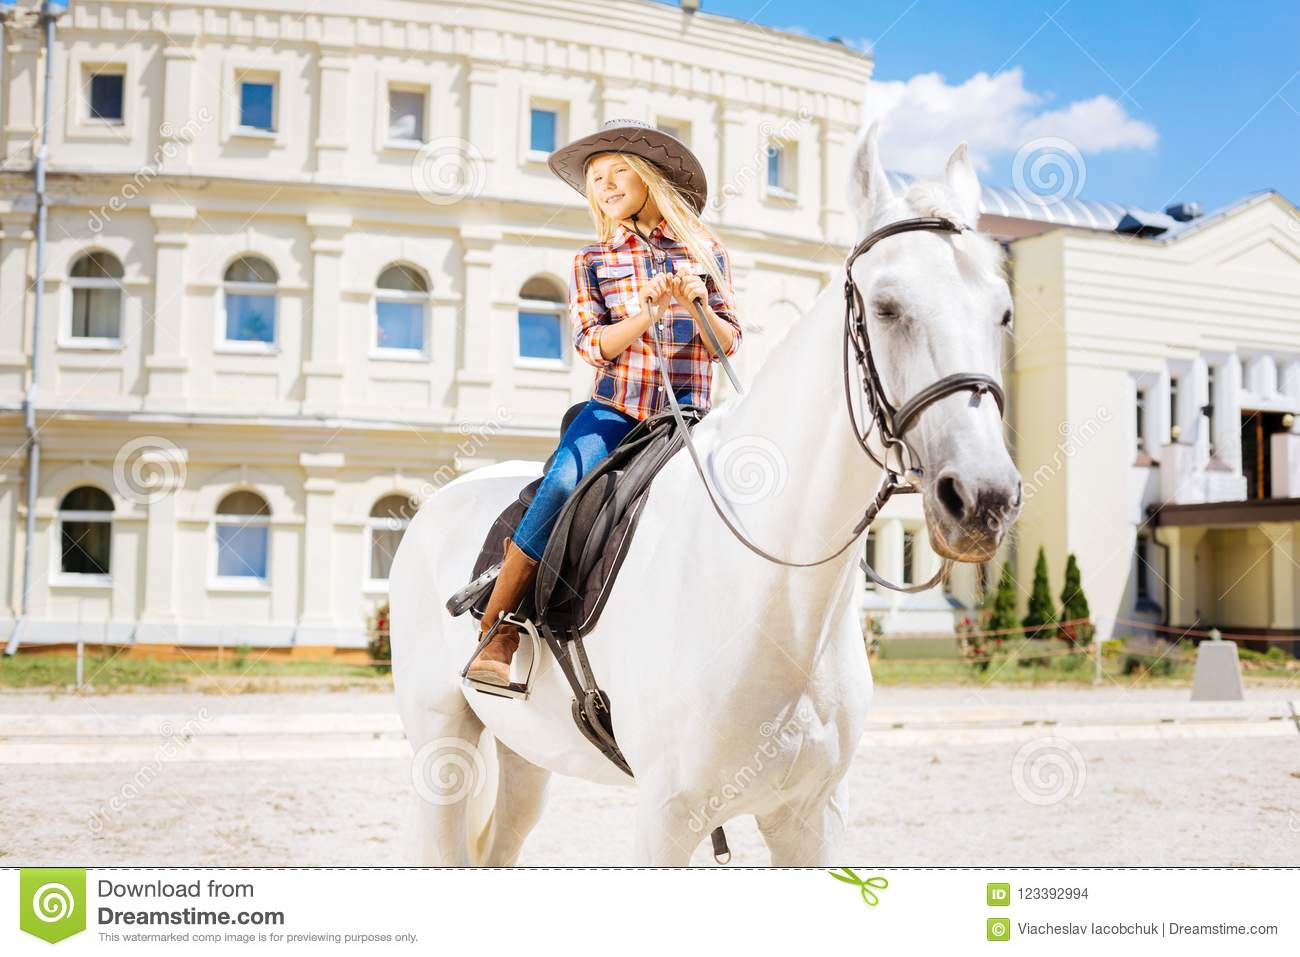 Cute schoolgirl fond of equestrianism riding horse on weekend